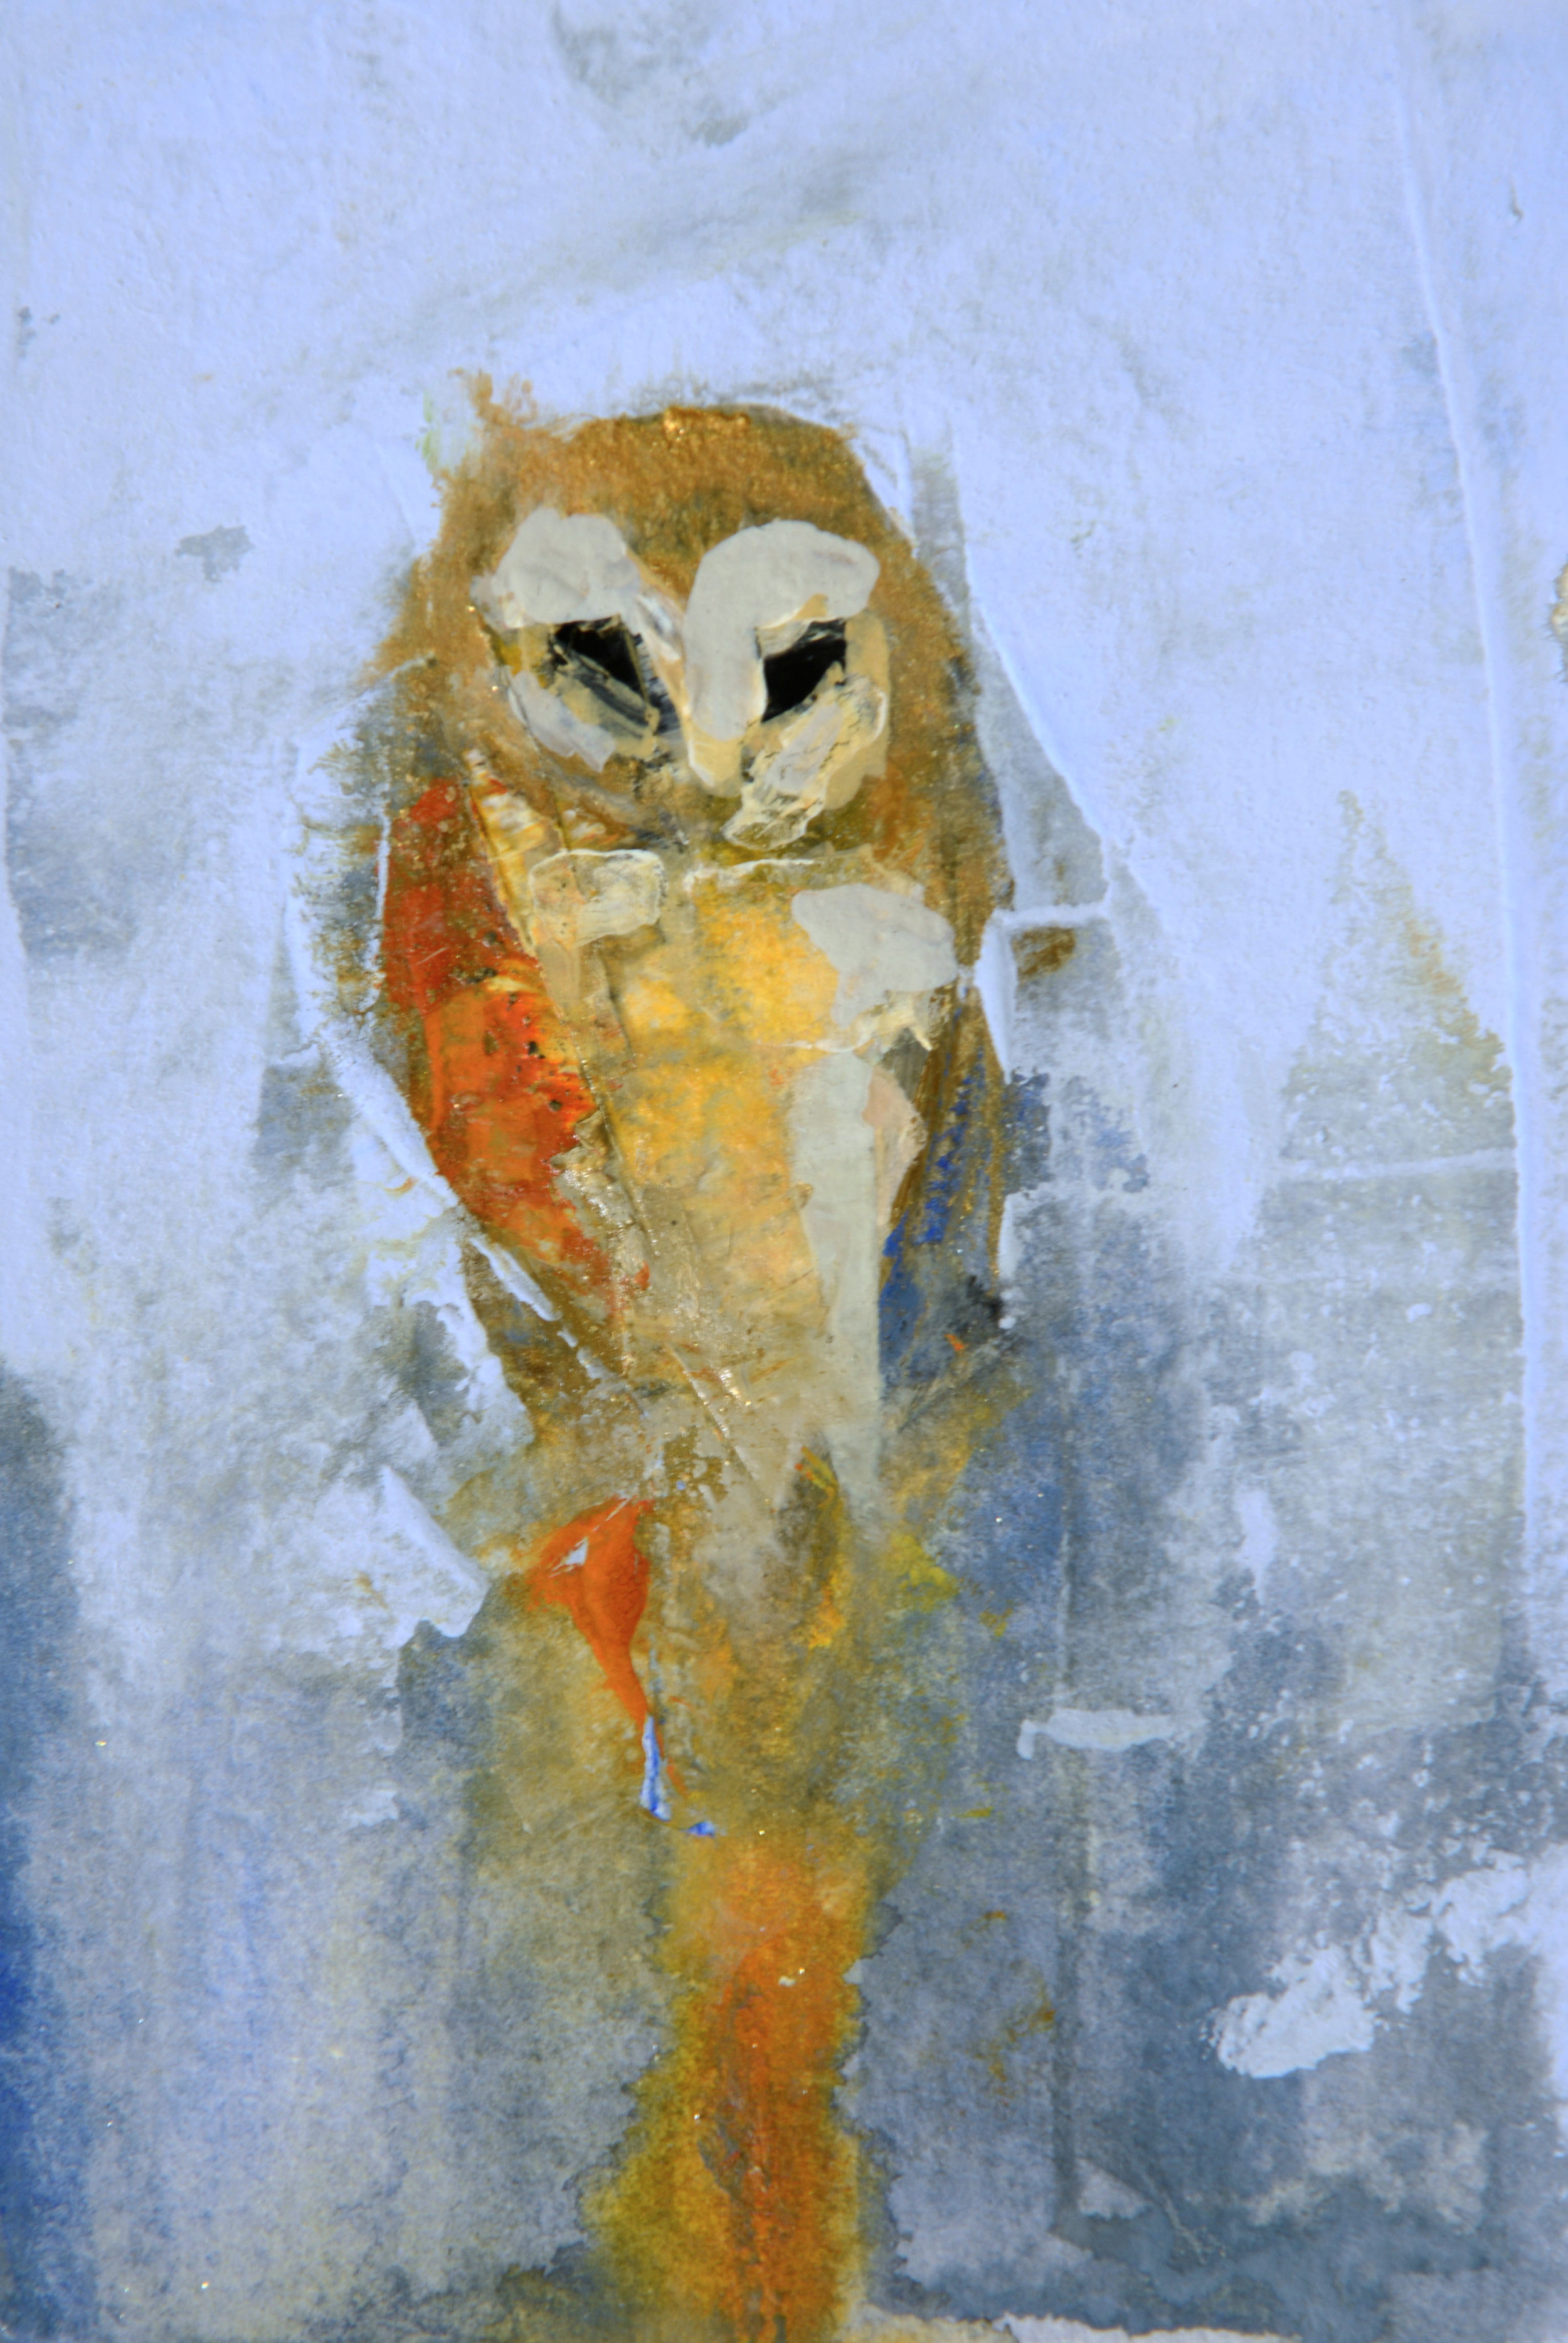 Barn Owl no. 2.MM on paper_inset on 11x7.5.jpg